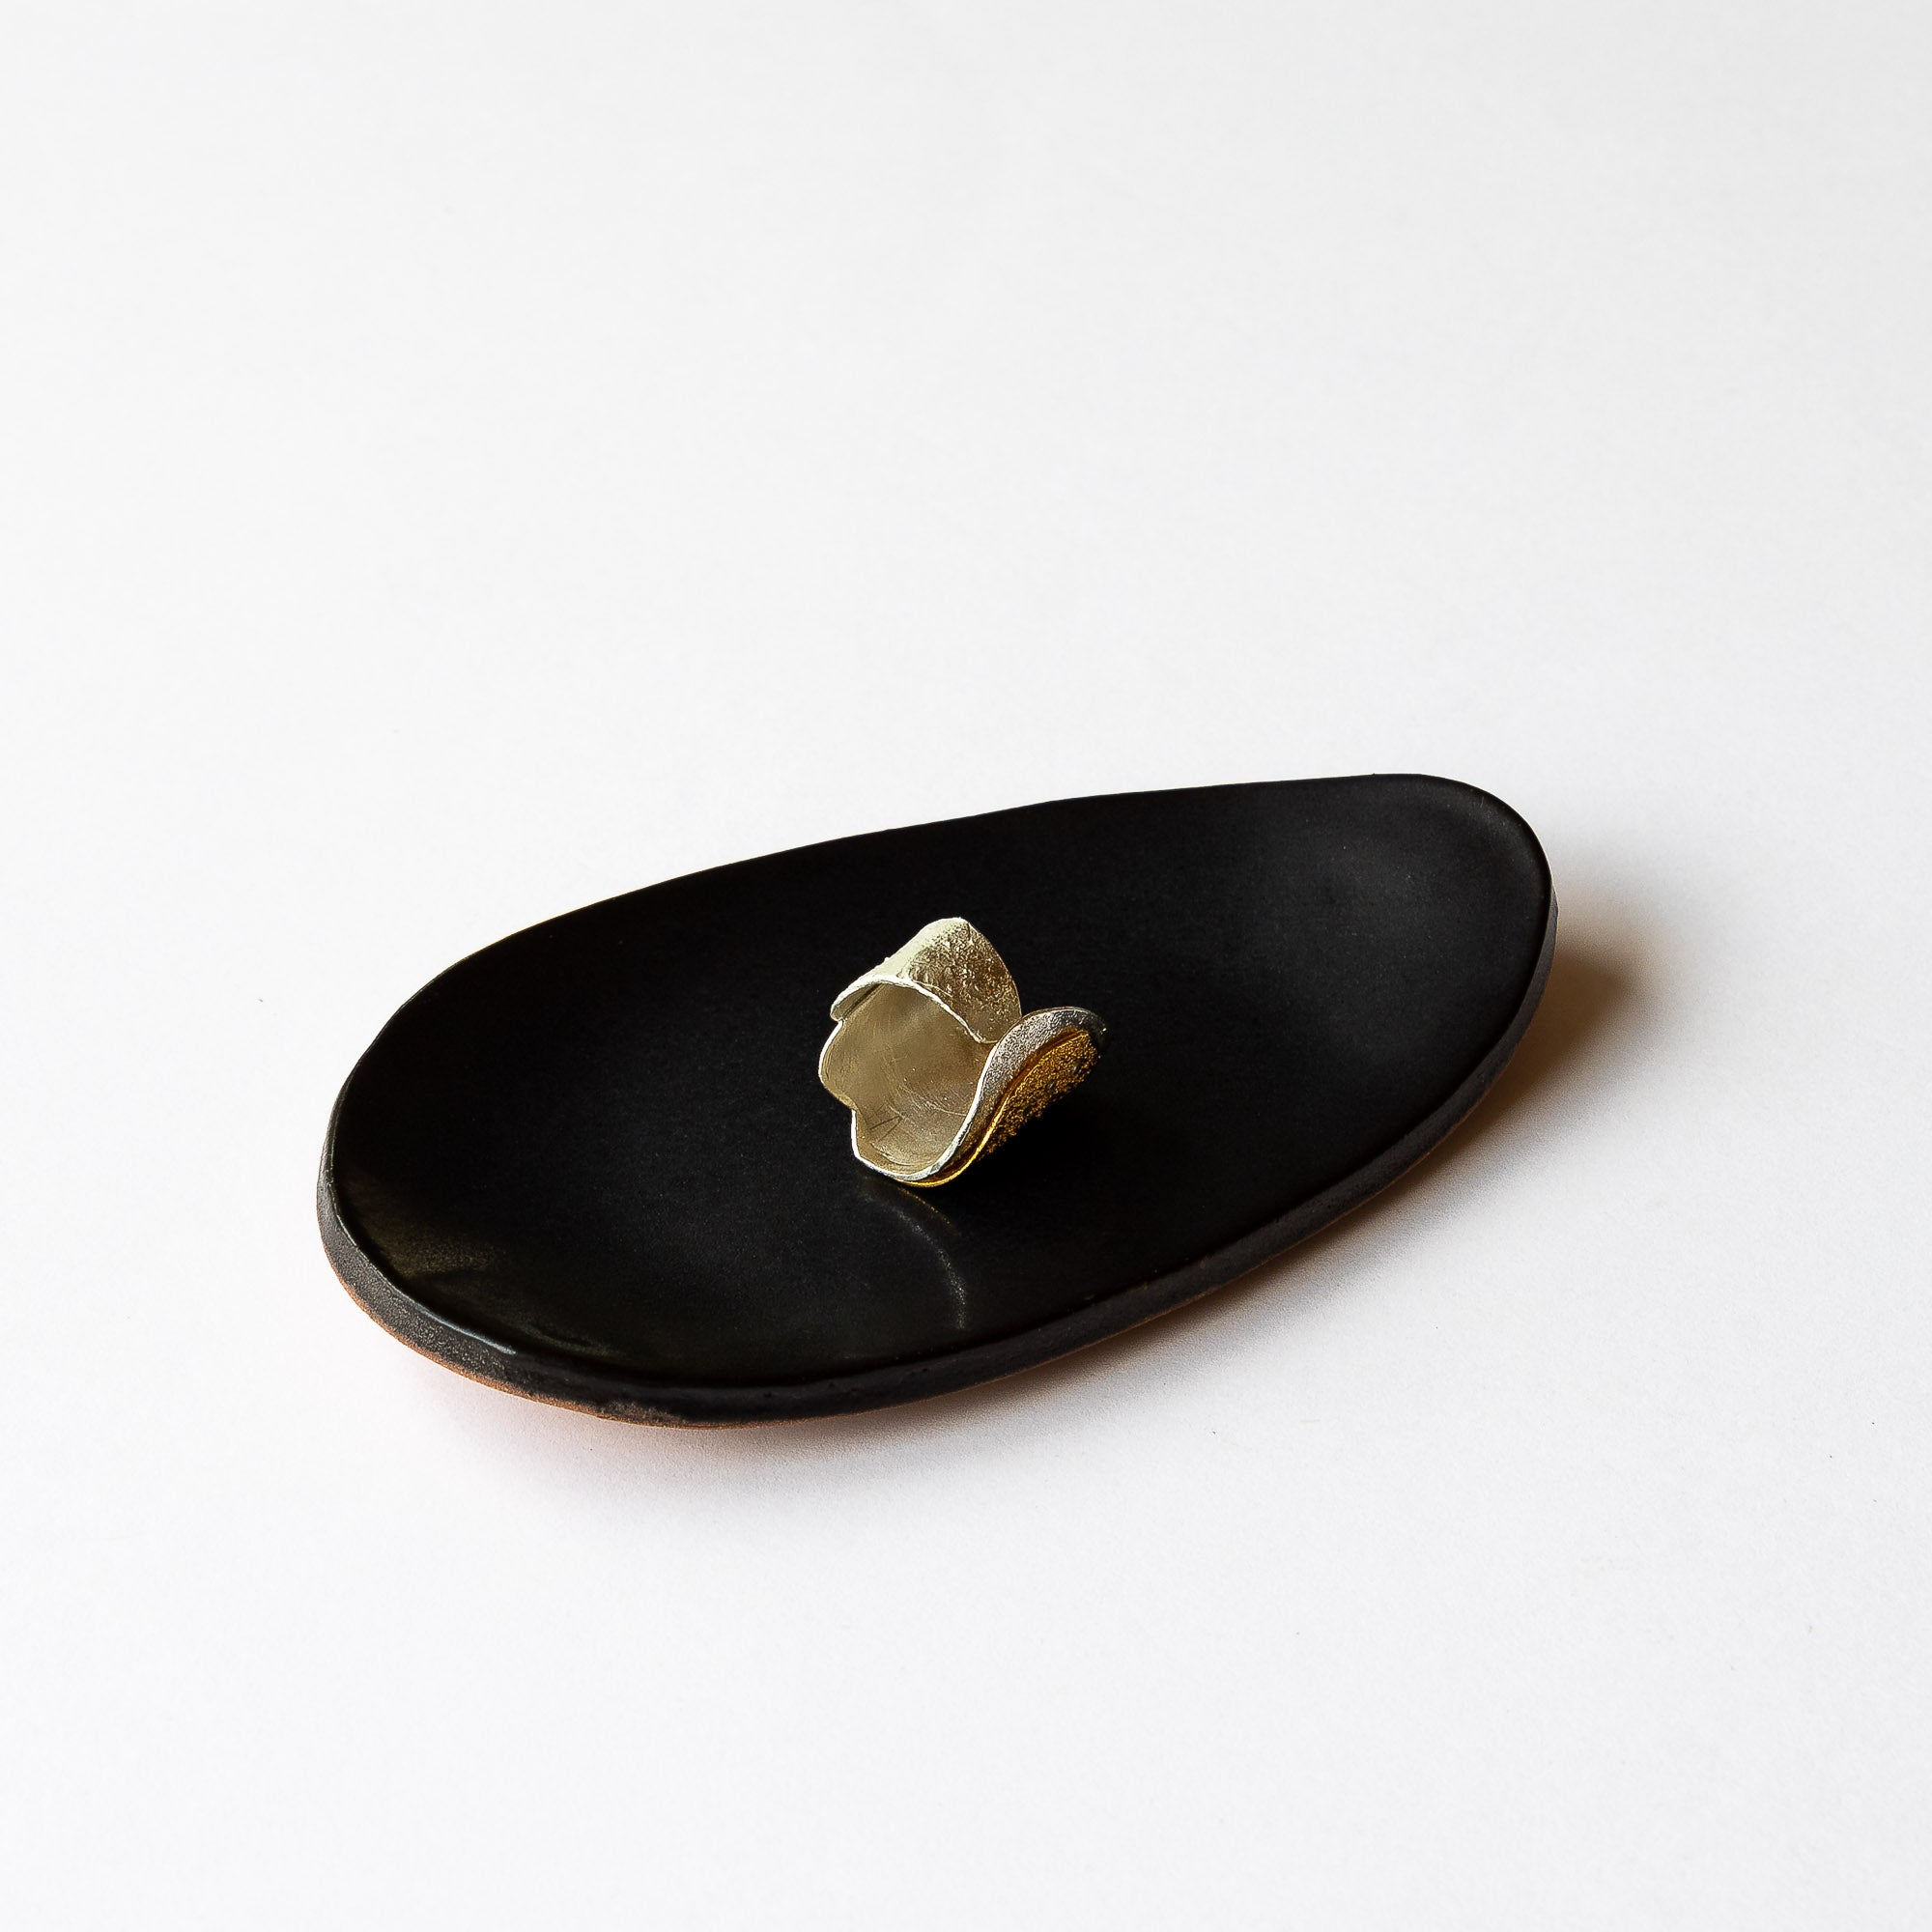 Shown With Silver & Gold Ring - Black Handmade Small Oval Stoneware Plate - Jewelry Dish - Sold by Chic & Basta